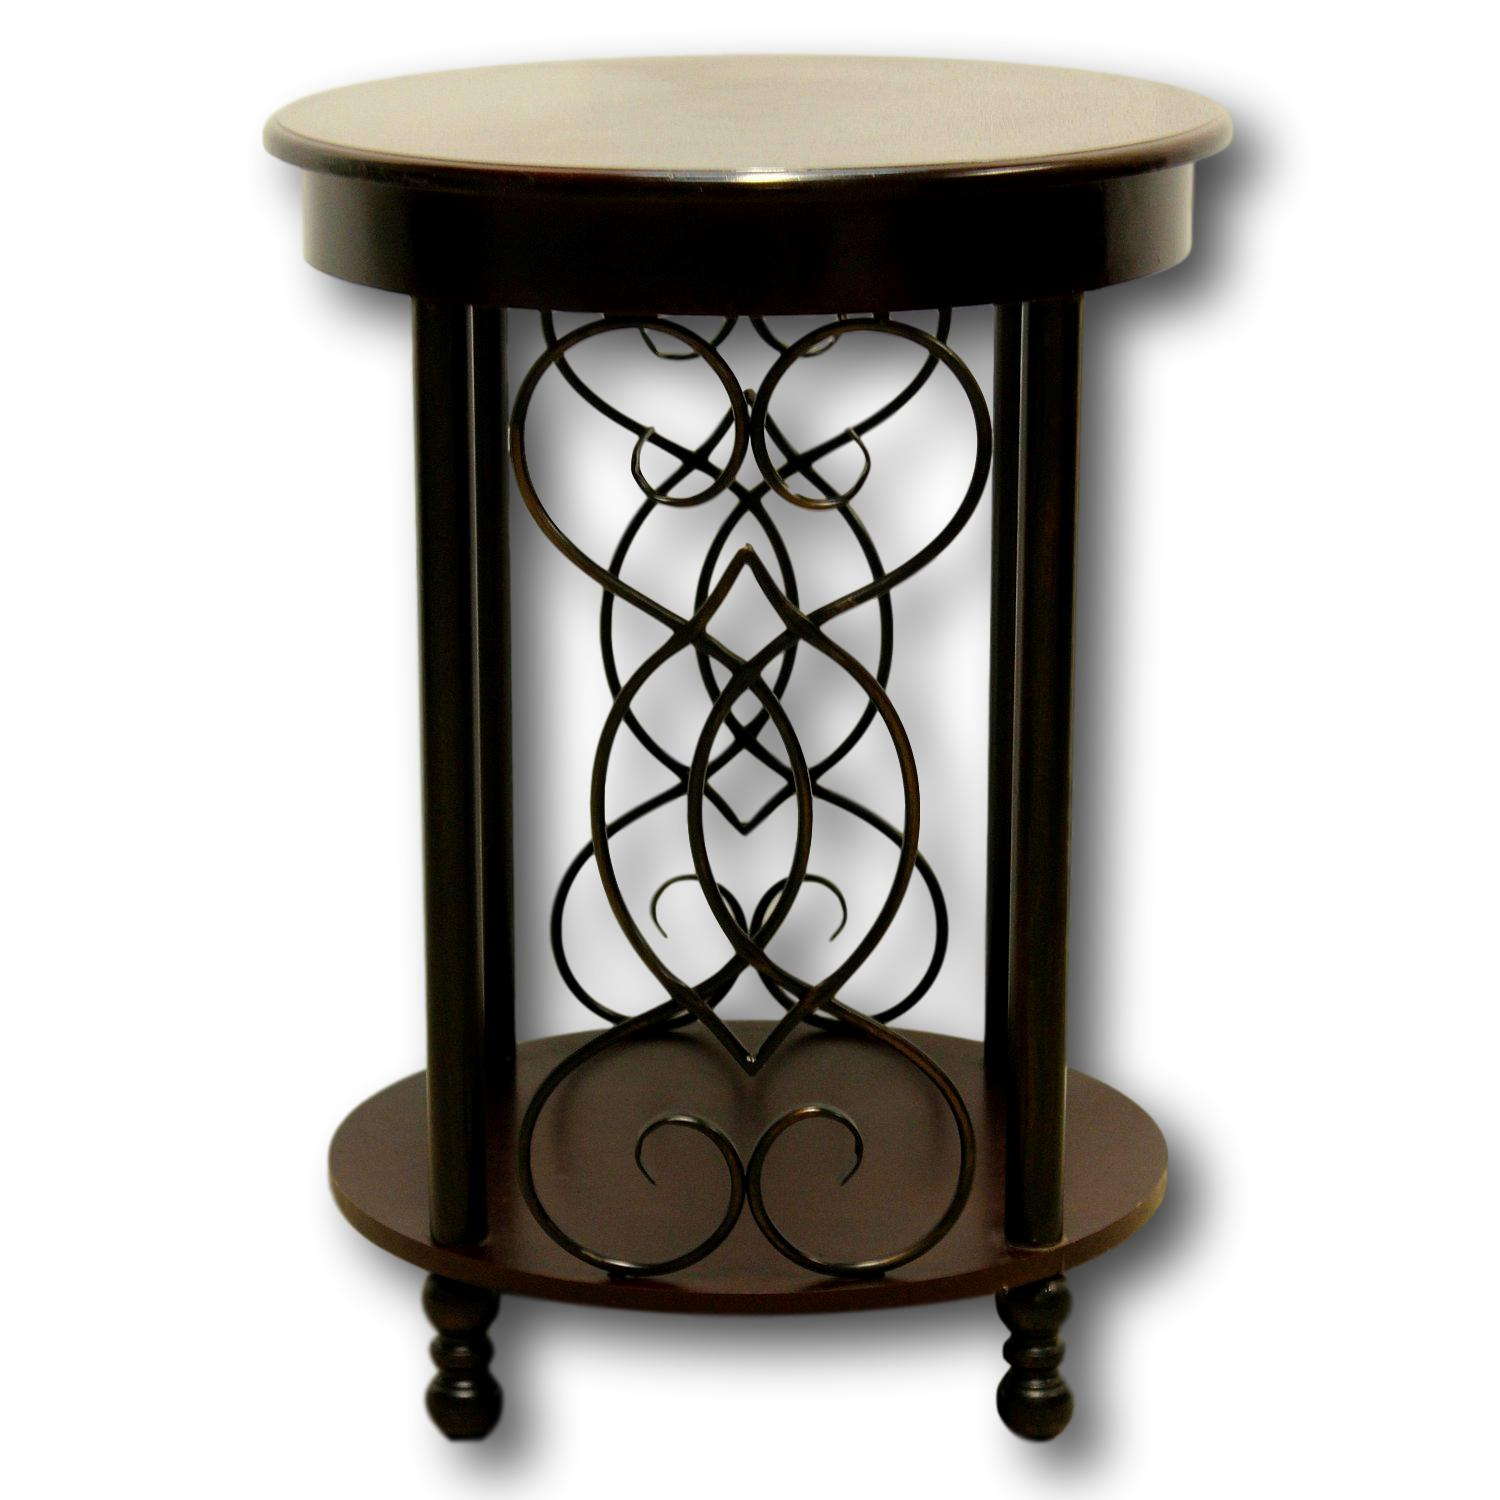 dark cherry metal accent table upscale consignment outdoor rustic furniture patio dining set modern lamps for living room copper home decor and accessories chair side with usb